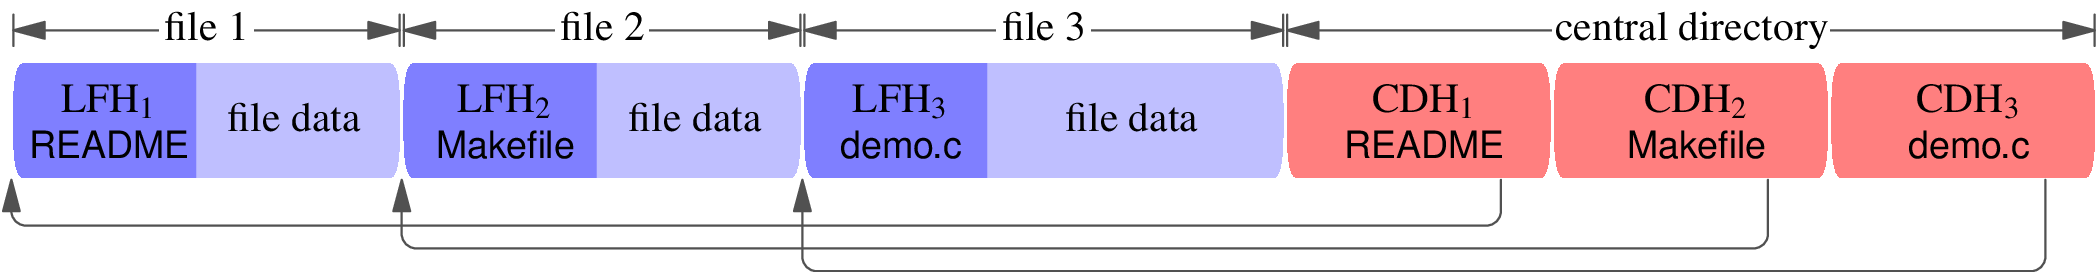 A block diagram of the structure of a zip file. The central directory header consists of three central directory headers labeled CDH[1] (README), CDH[1] (Makefile), and CDH[3] (demo.c). The central directory headers point backwards to three local file headers LFH[1] (README), LFH[2] (Makefile), and LFH[3] (demo.c). Each local file header is joined with file data. The three joined blocks of (local file header, file data) are labeled file 1, file 2, and file 3.